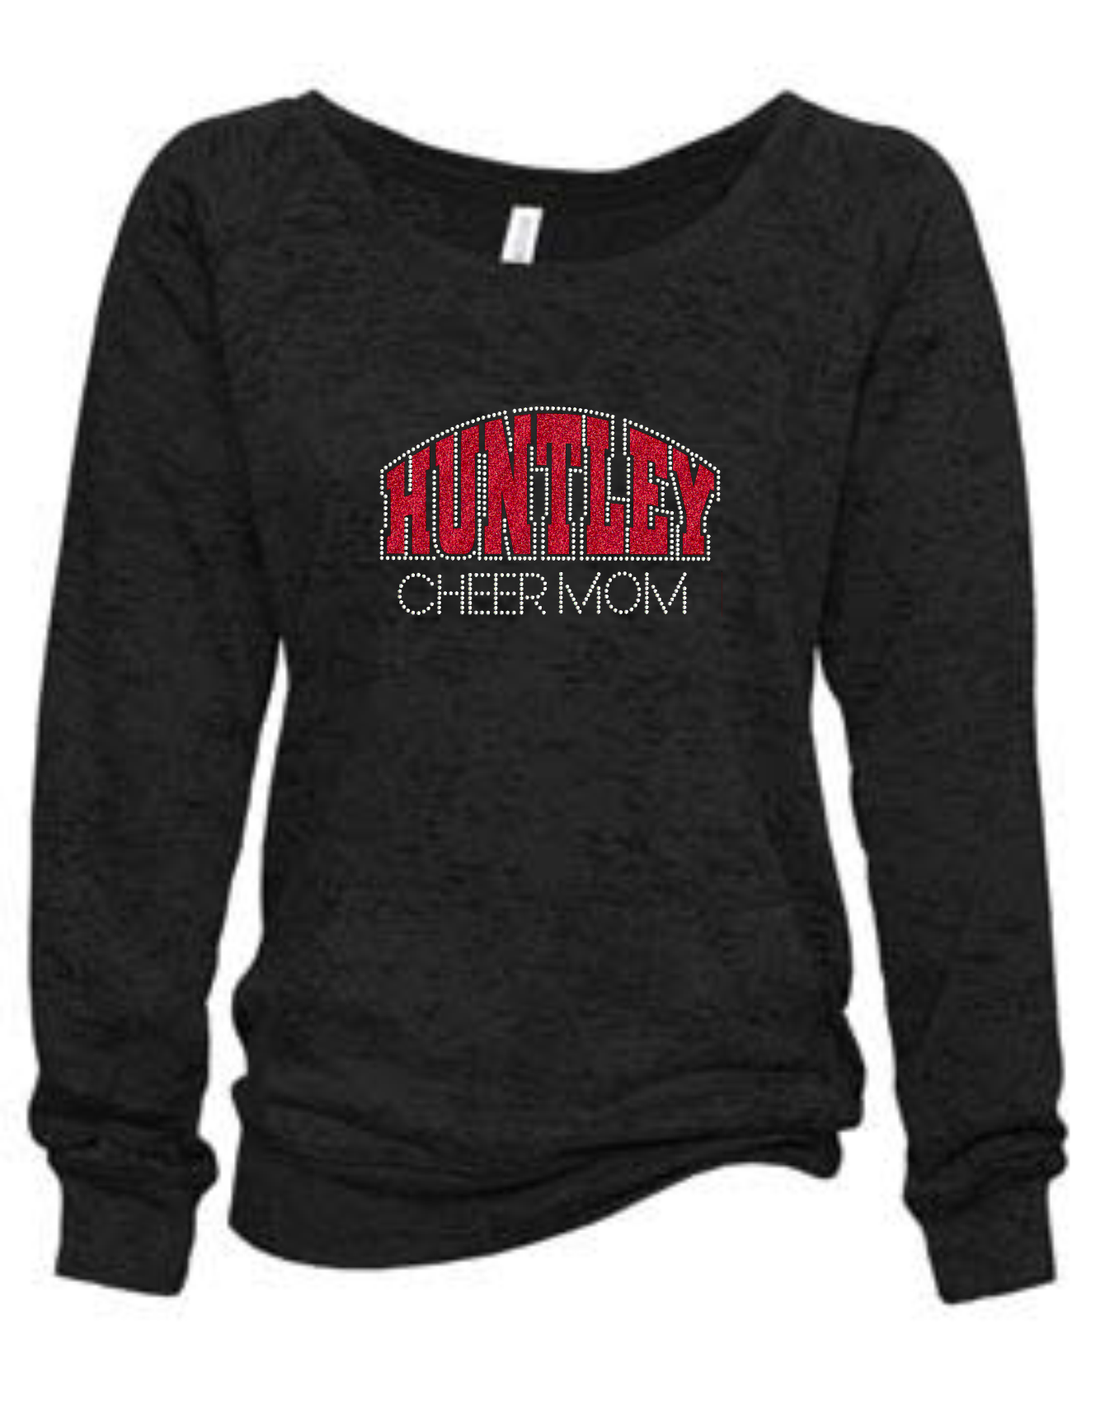 HPD SLOUCHY BURNOUT SWEATSHIRT